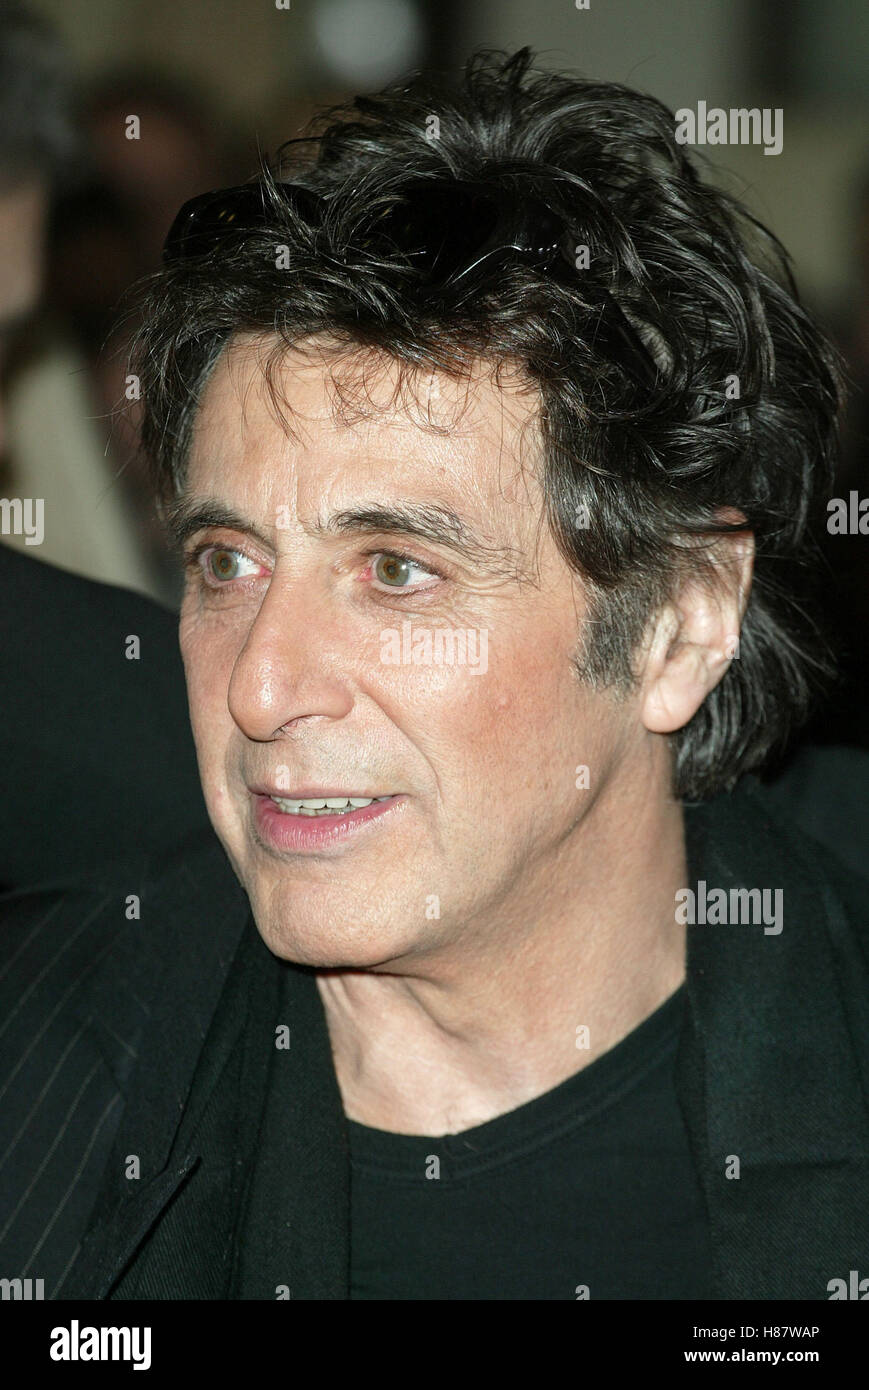 AL PACINO THE RECRUIT FILM PREMIERE CINERAMA DOME HOLLYWOOD LOS ANGELES USA 28 January 2003 - Stock Image